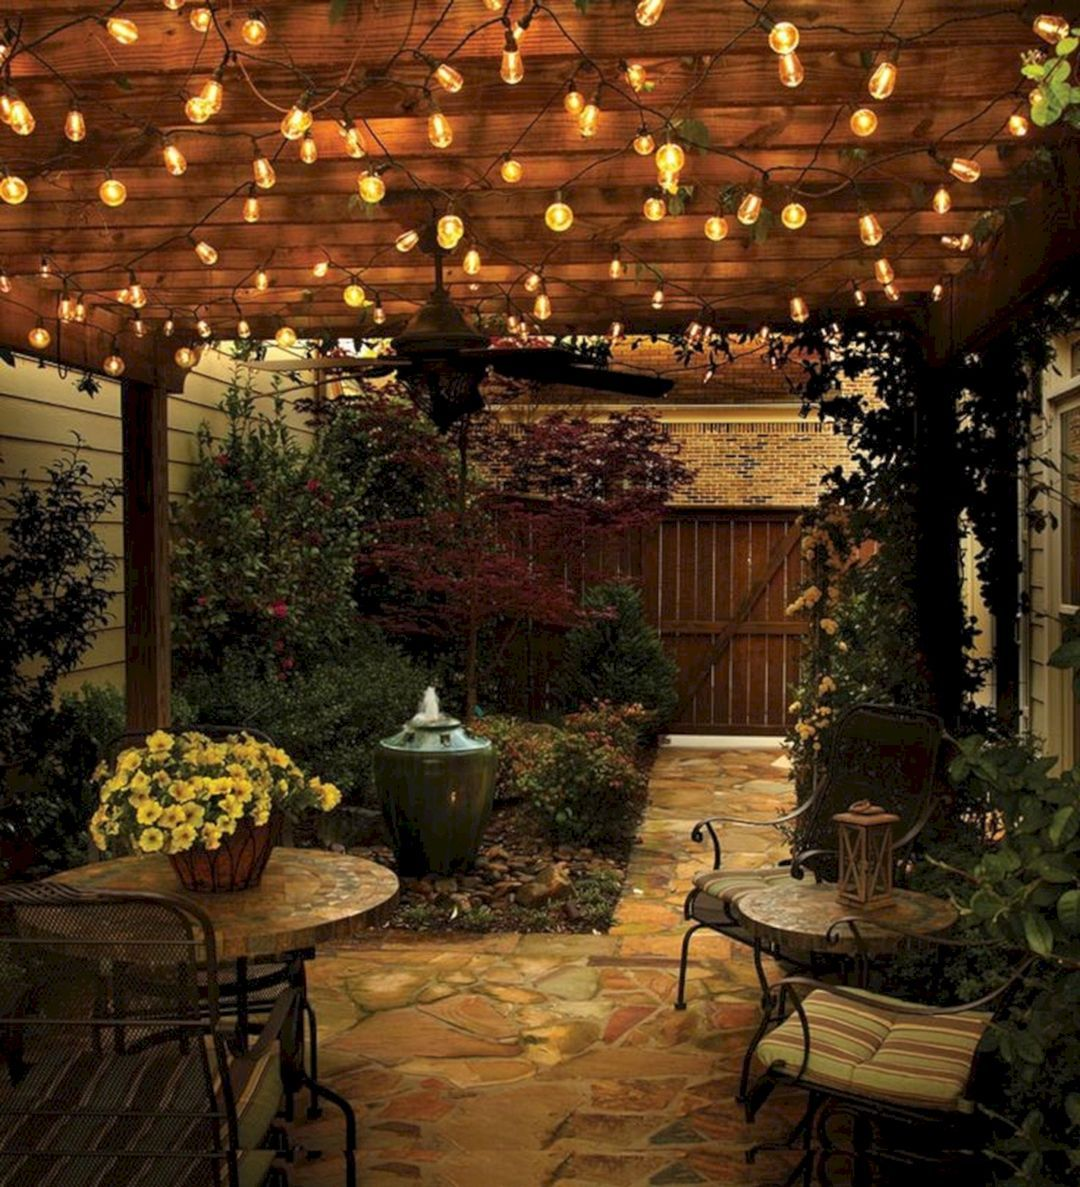 25+ Inspirational Garden Lighting Design For Amazing Garden Ideas #patioandgardenideas